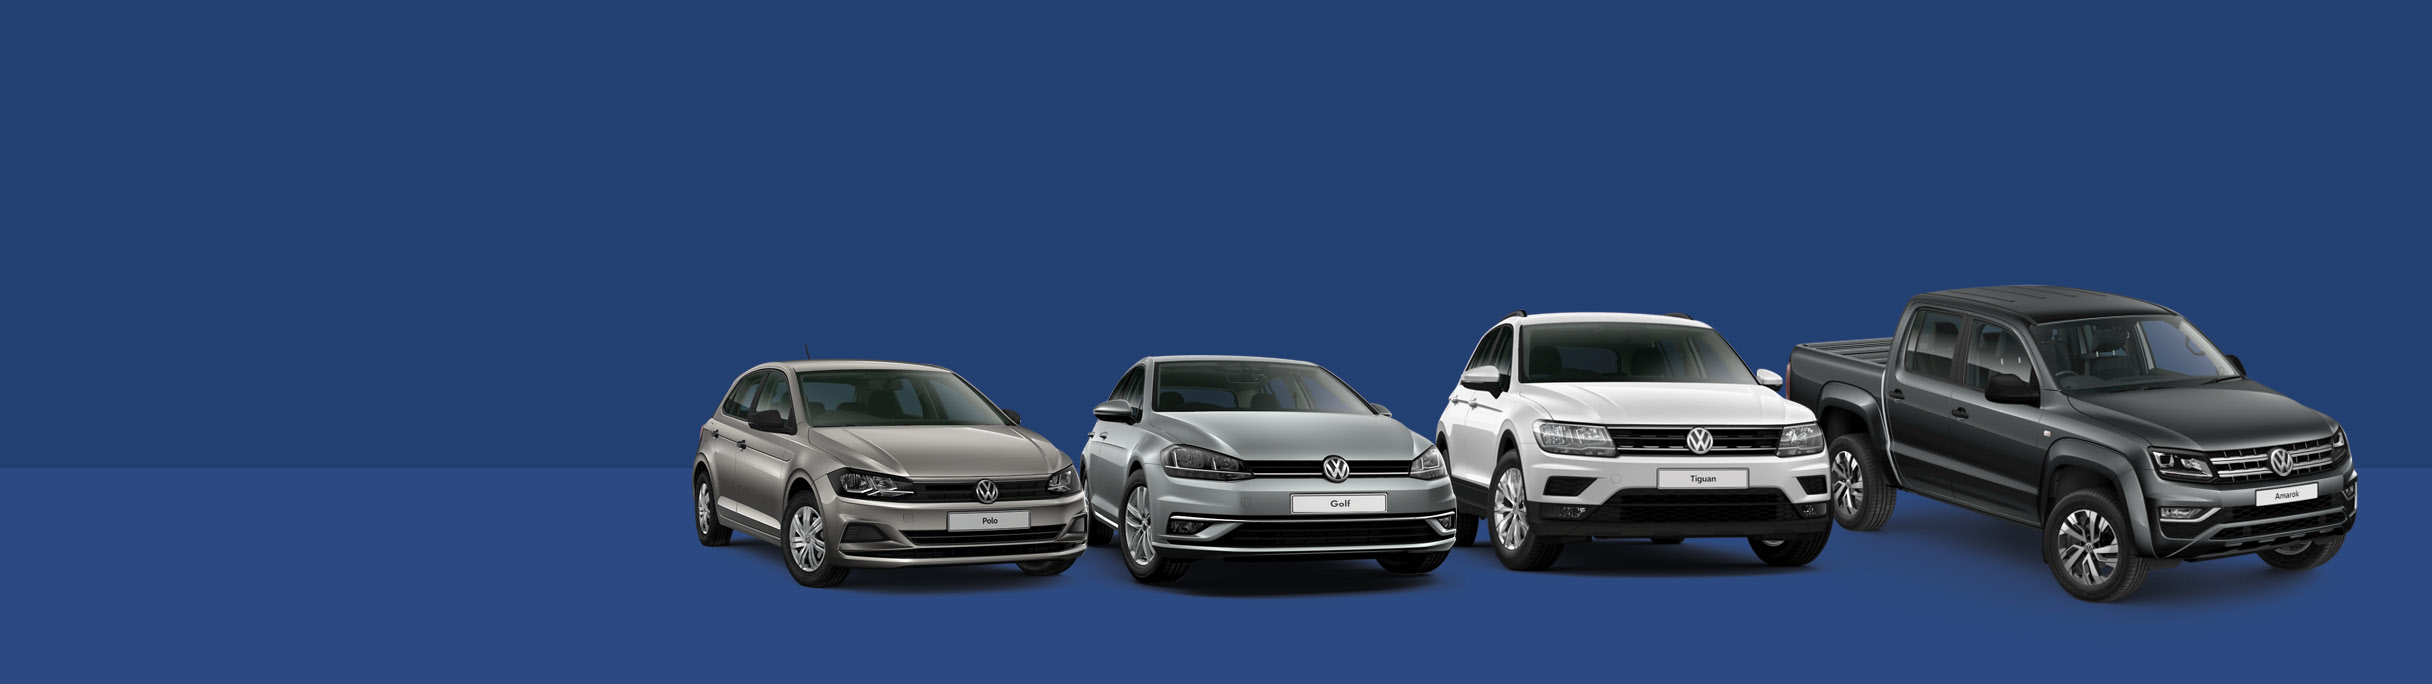 Barons N1 City Volkswagen Specials